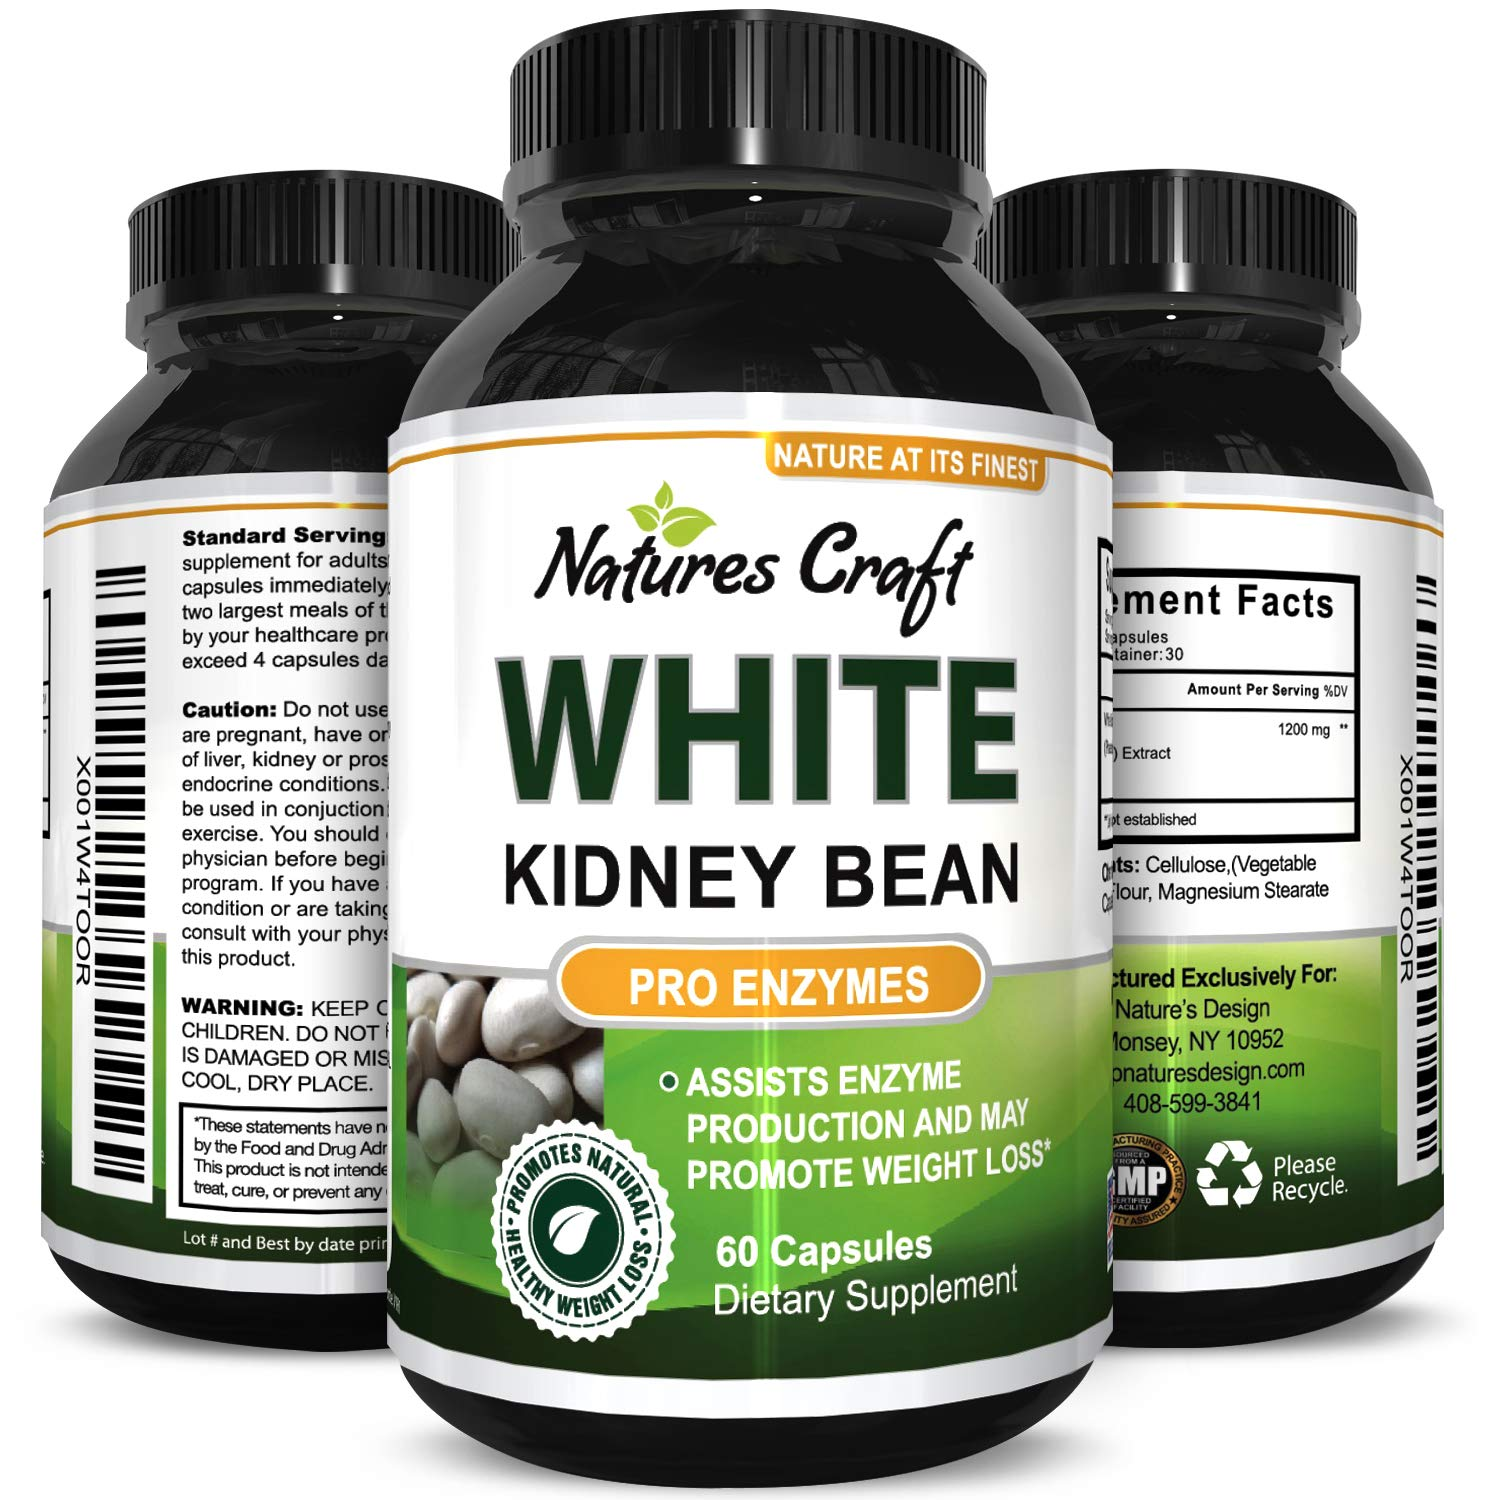 Natures Craft s 100 Pure White Kidney Bean Extract Phase 2 Starch Neutralizer a Natural Carb Blocker Appetite Suppressant, Supports Weight Loss Helps Control Blood Sugar 60 Capsules